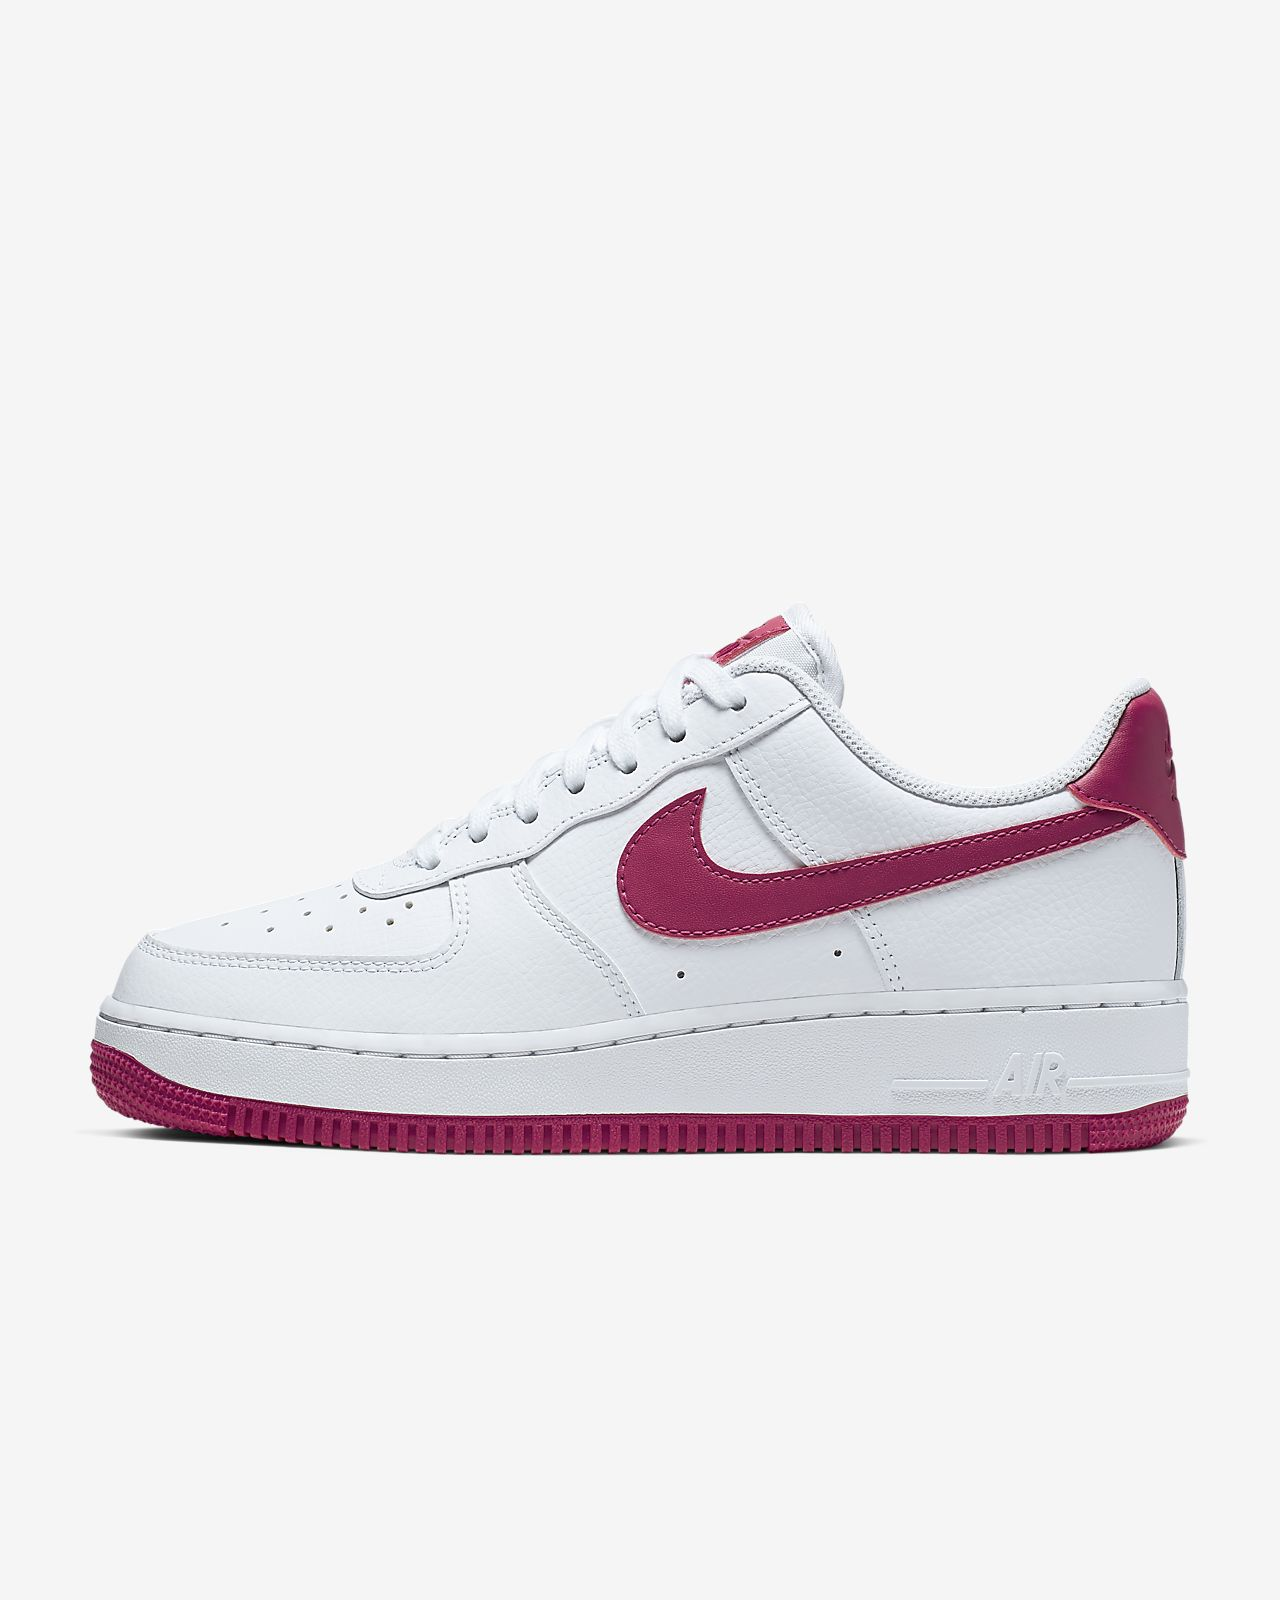 Sapatilhas Nike Air Force 1 Patent '07 para mulher